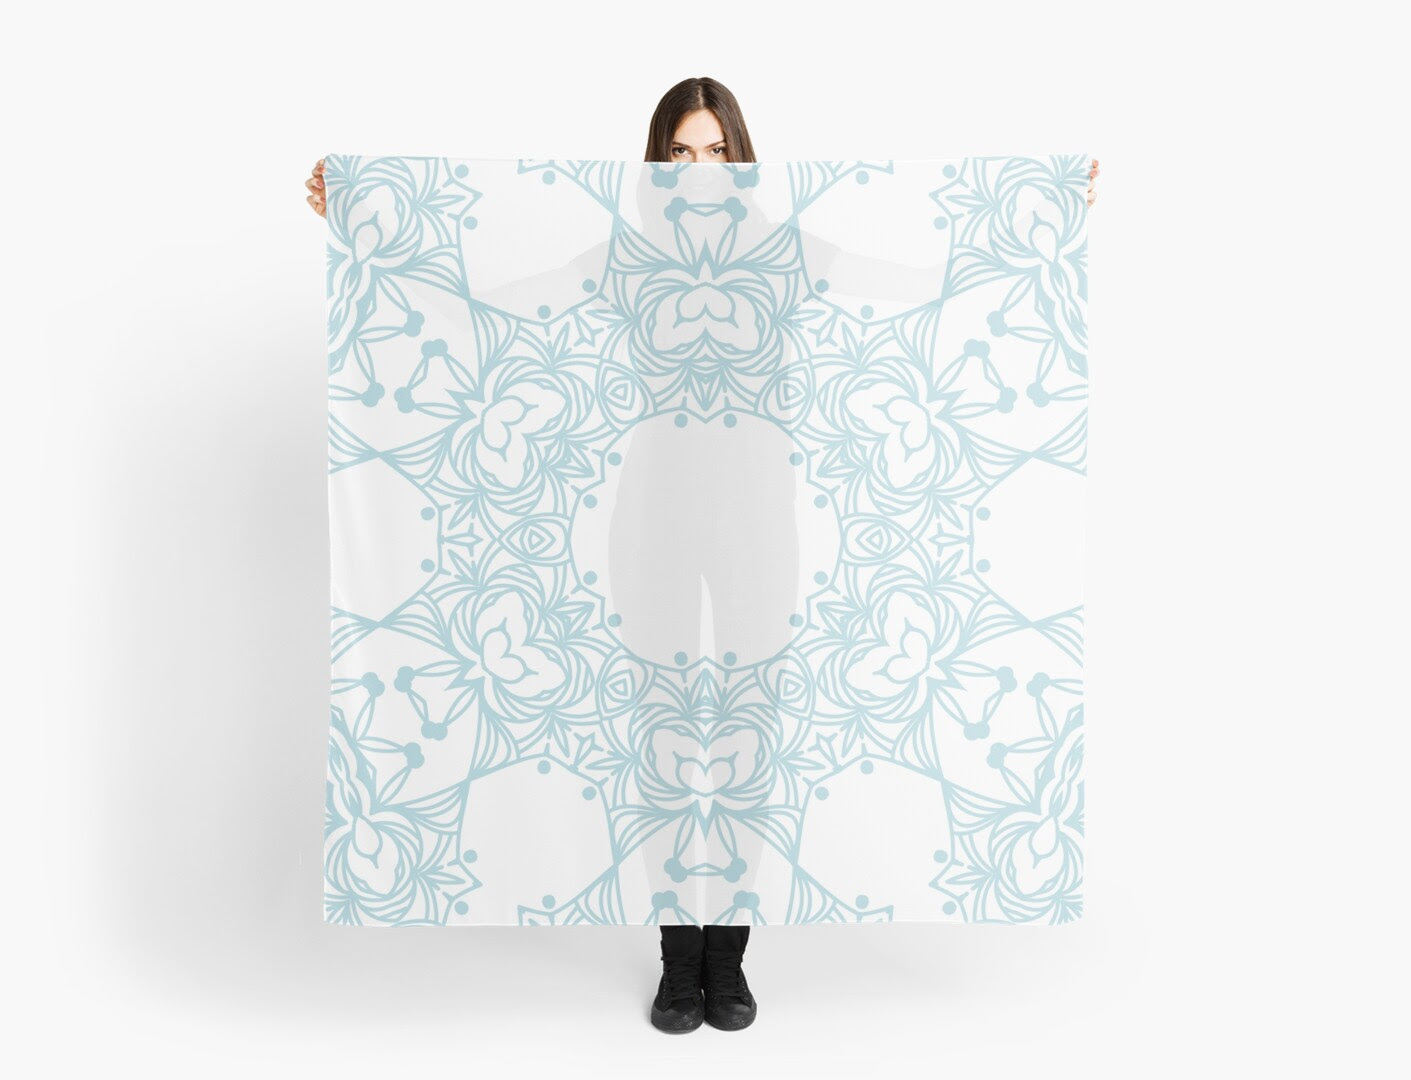 http://www.redbubble.com/people/torriphoto/works/23551248-abstract-blue-design-with-arabesque-ornament?asc=u&p=scarf&rel=carousel